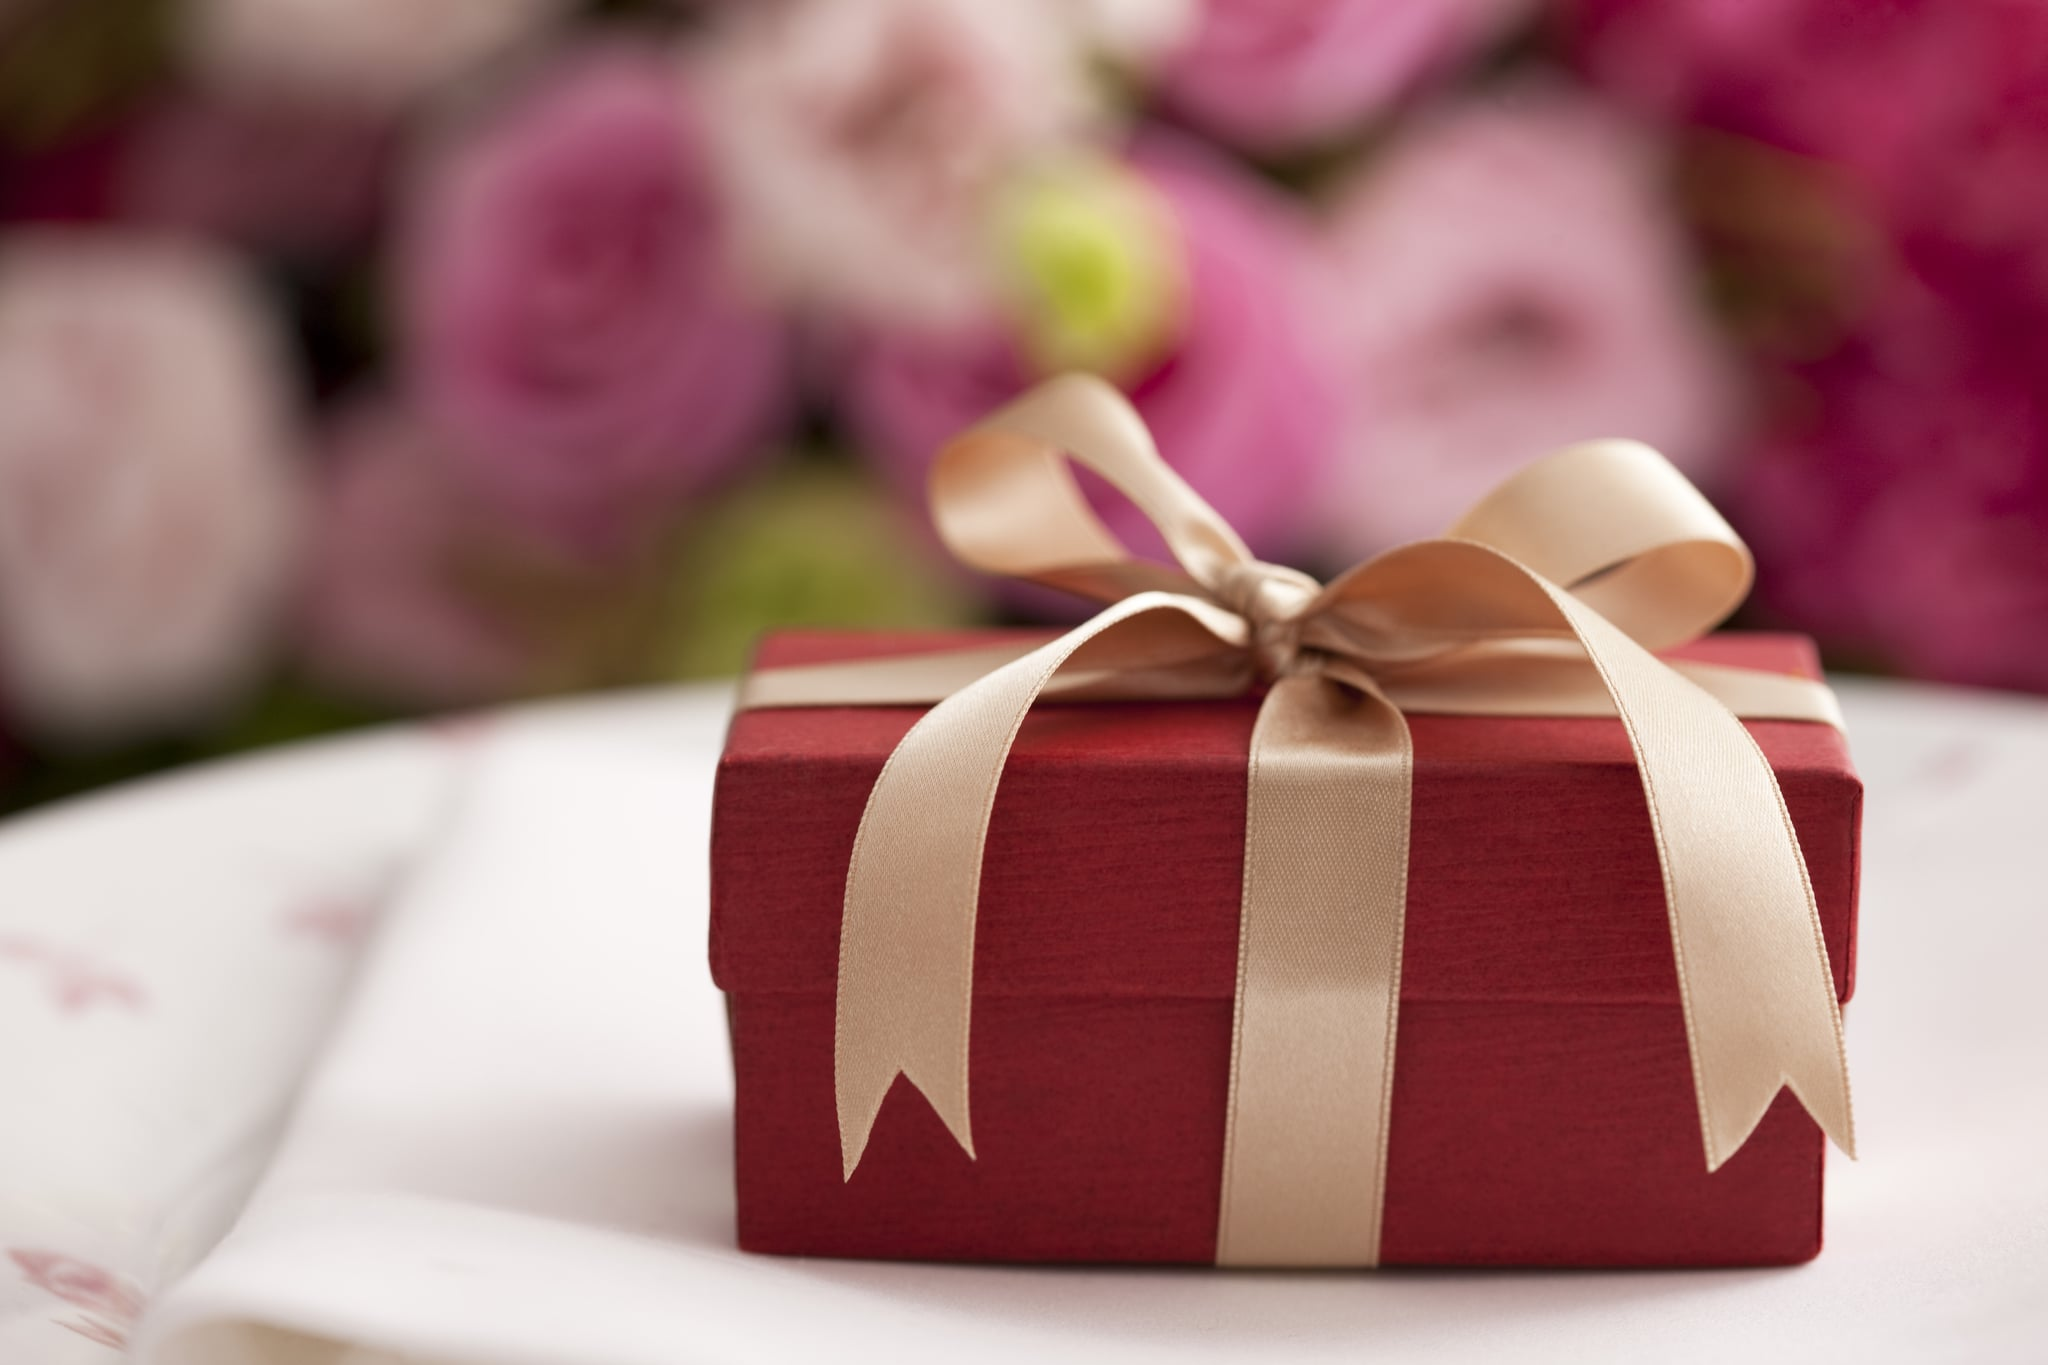 Wedding Gift Ideas Australia: How Long Do You Have To Buy A Wedding Gift?